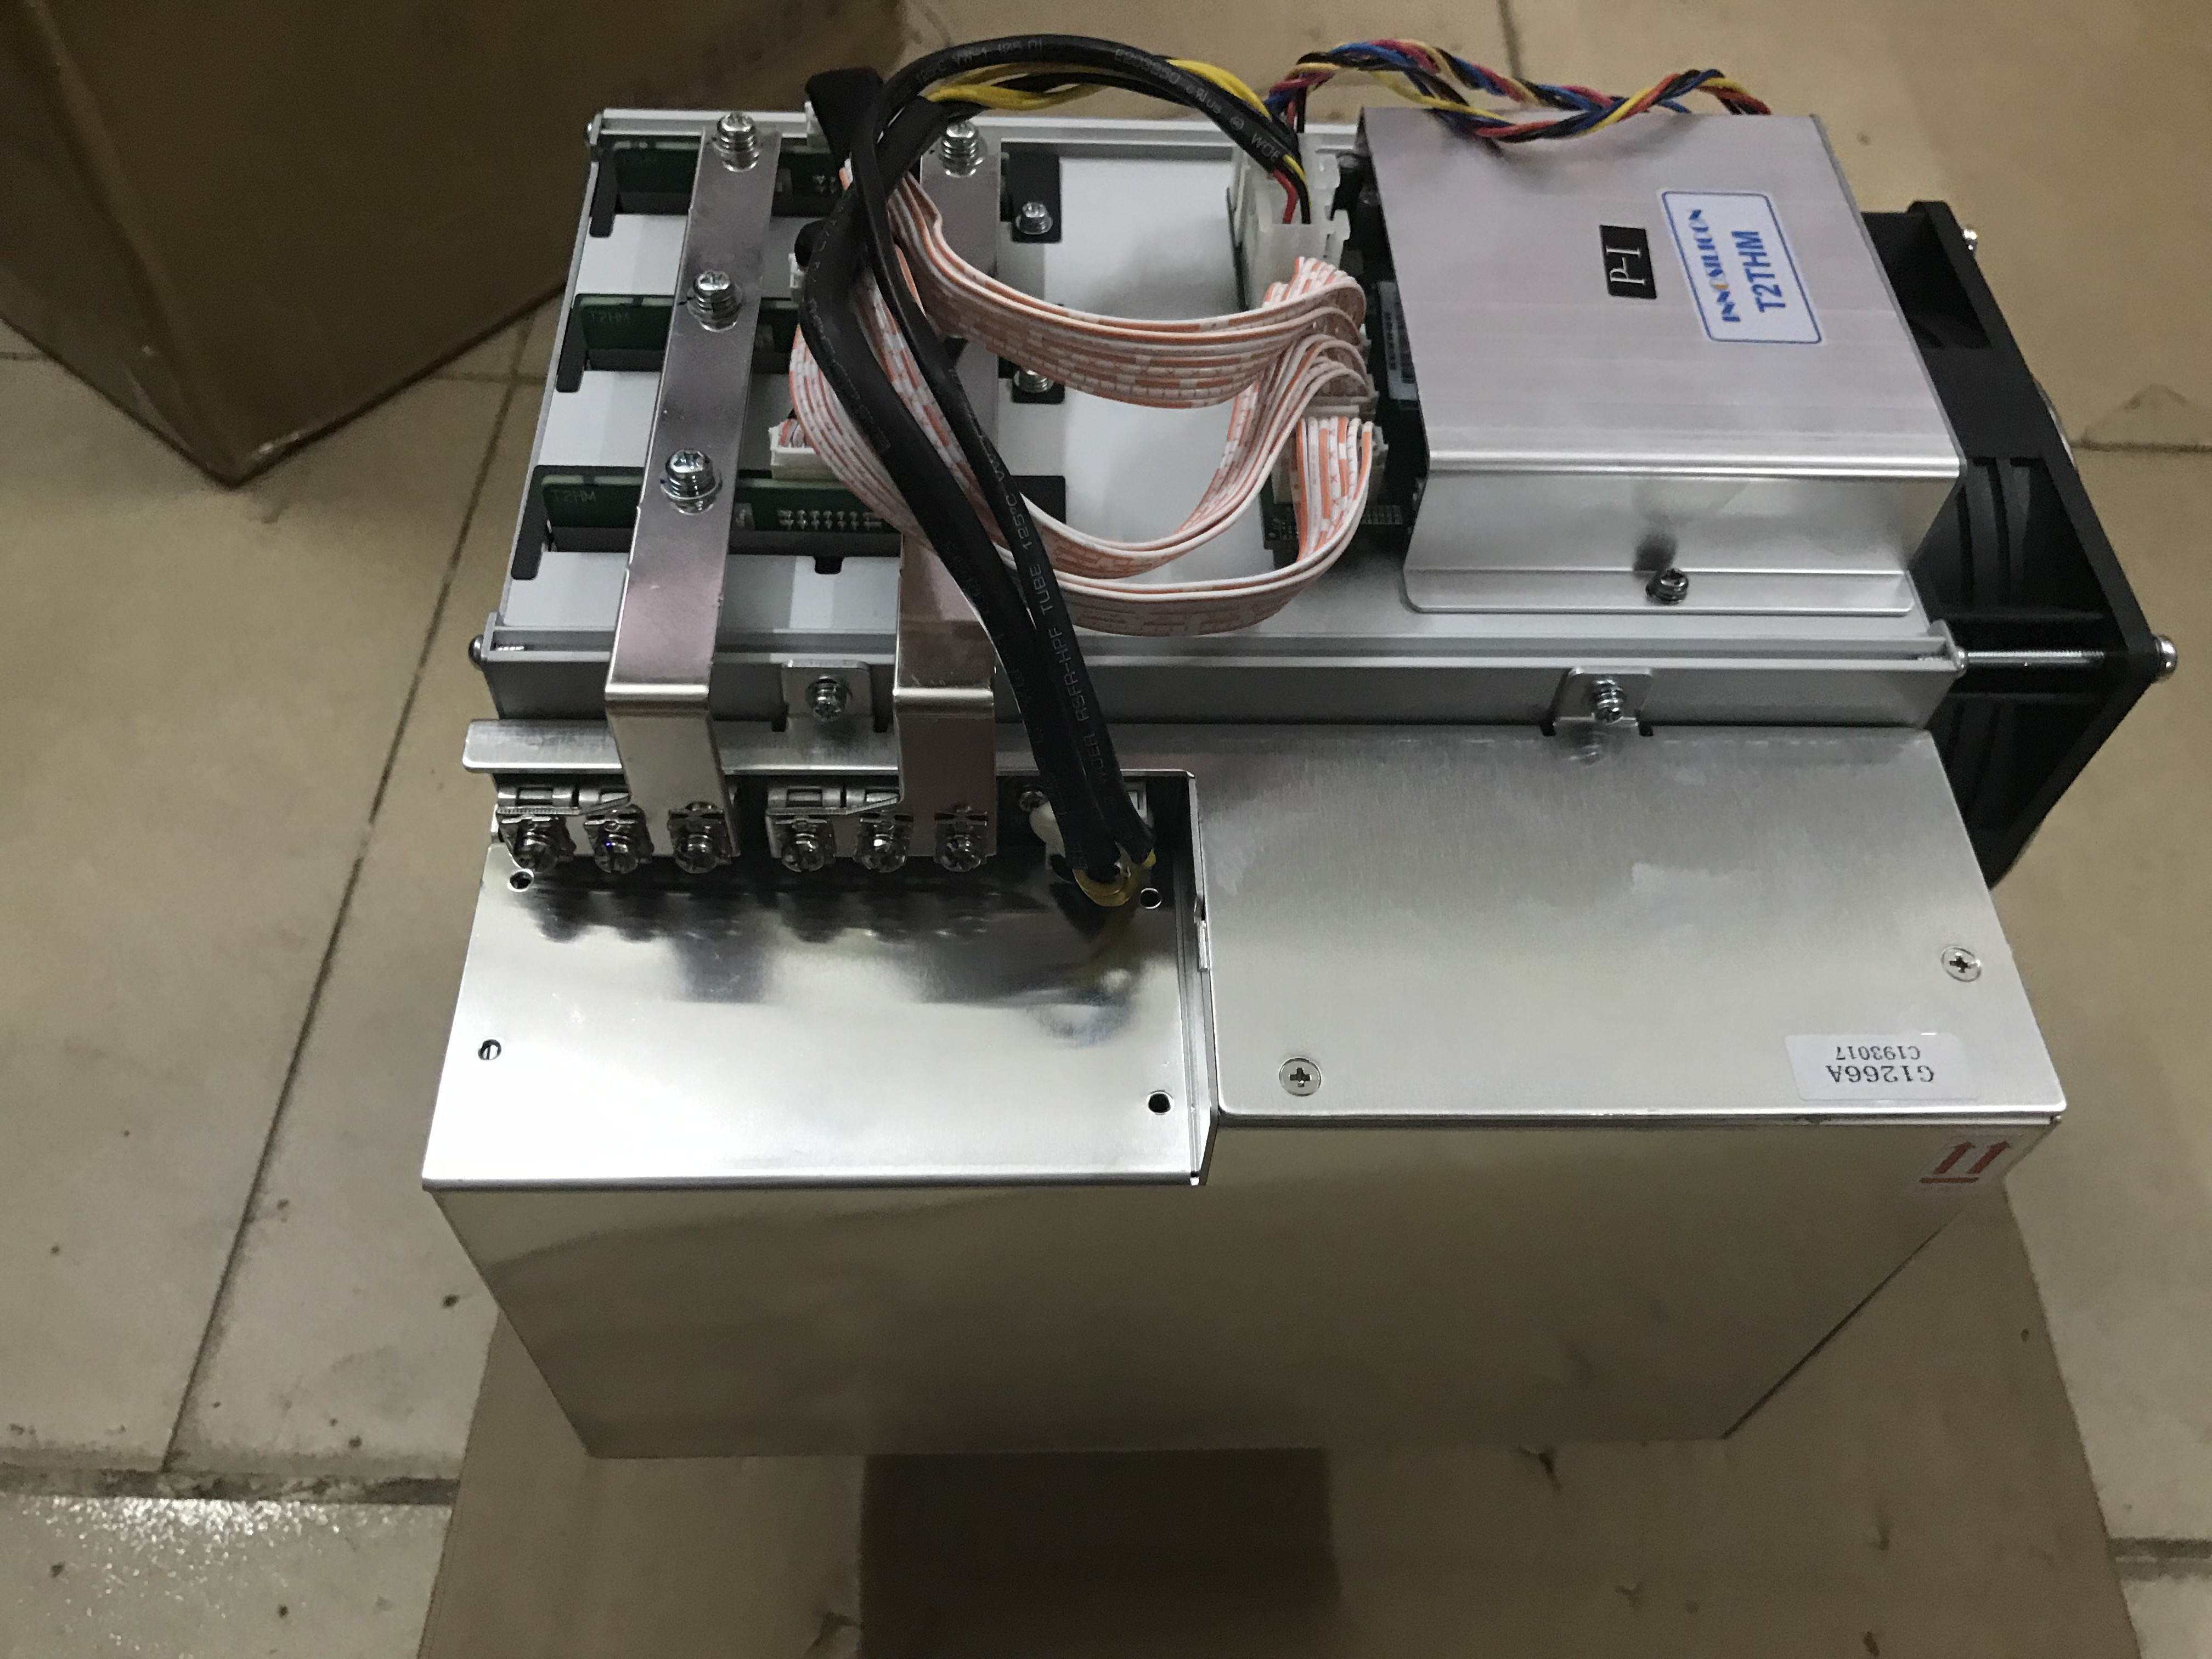 used old BTC Miner INNOSILICON Turbo  T2T  26TH/s Bitcoin Miner SHA256 With PSU Better Than Antminer S9 S11 S15 S17 T9+ T15 T1 3